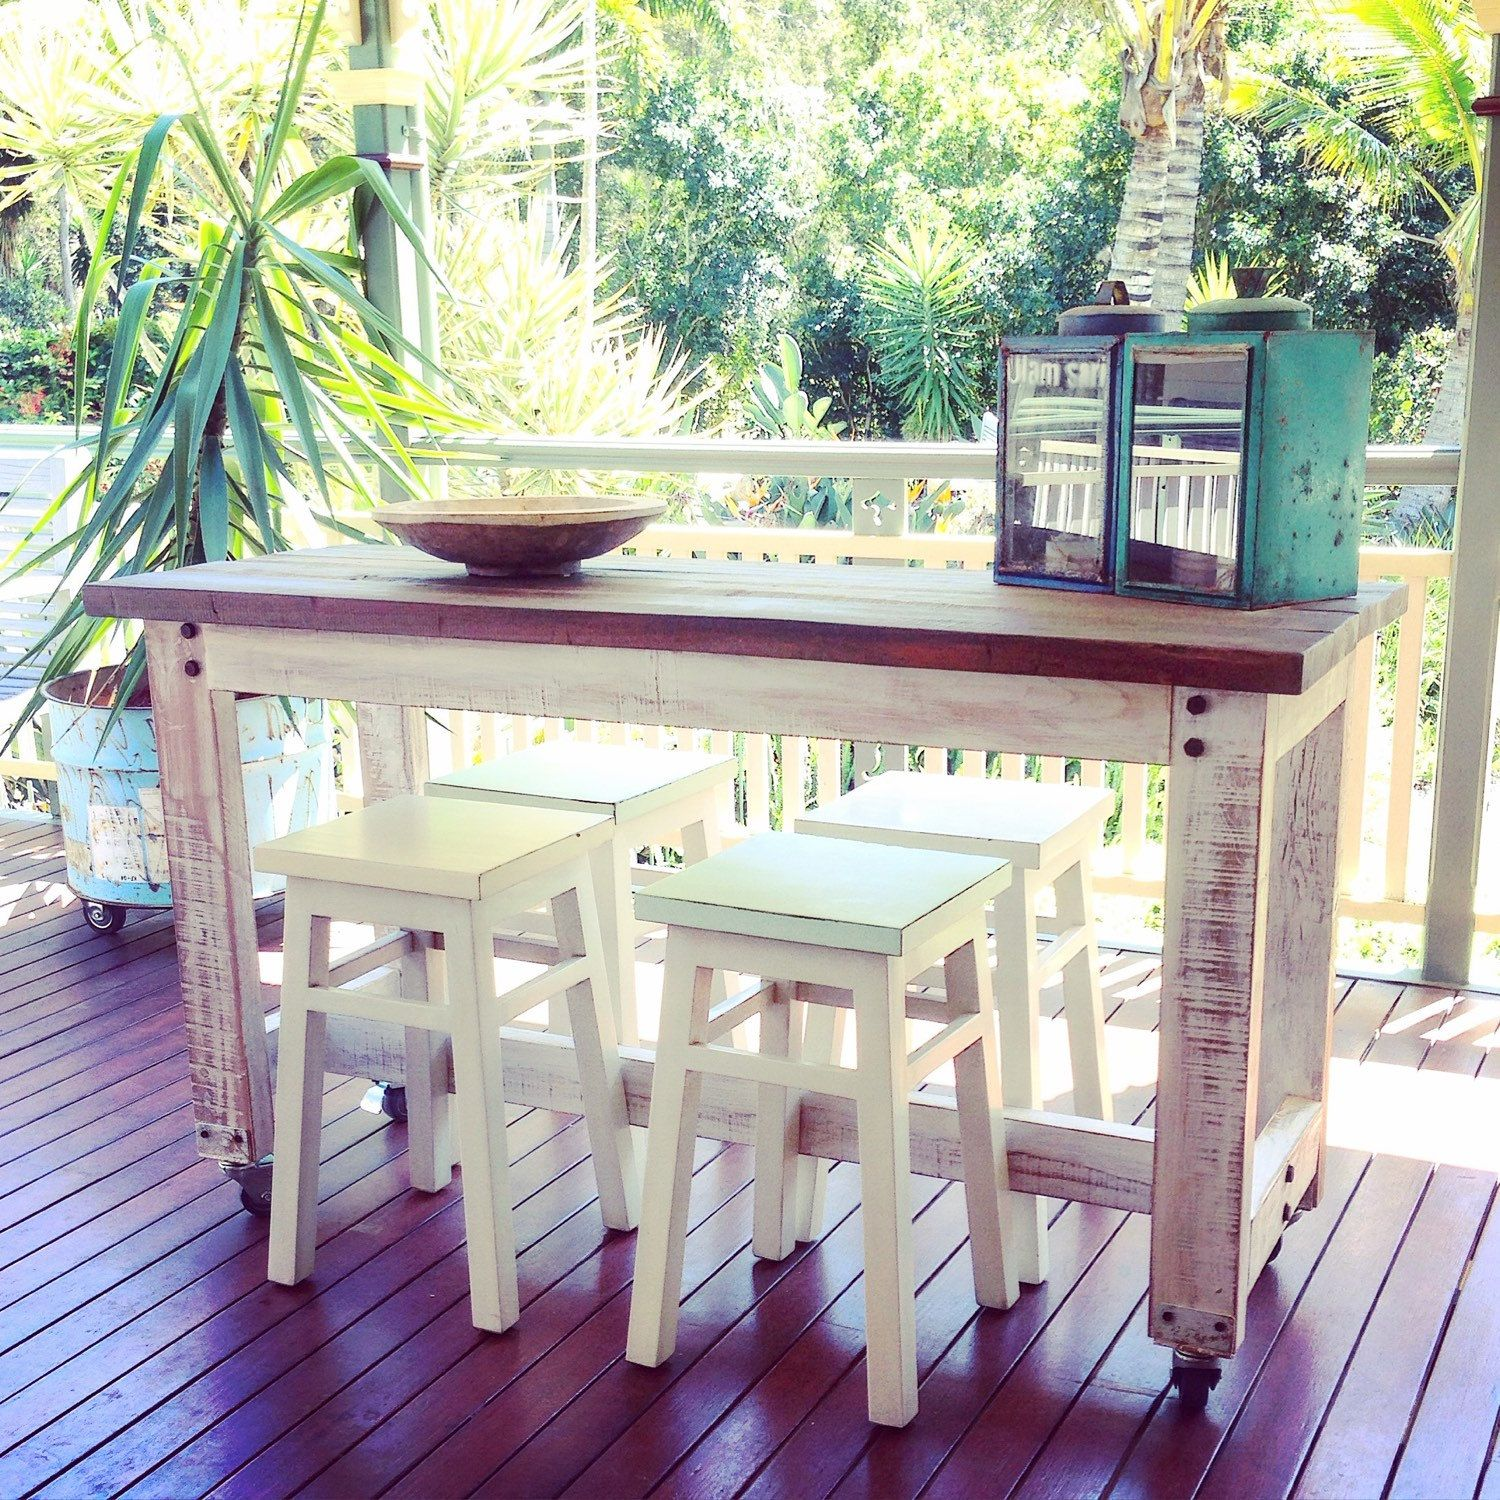 Pin By Timber Revival On Our New Recycled And Reclaimed: Love Seeing Photos Of Our Recycled High Bench Table In Our